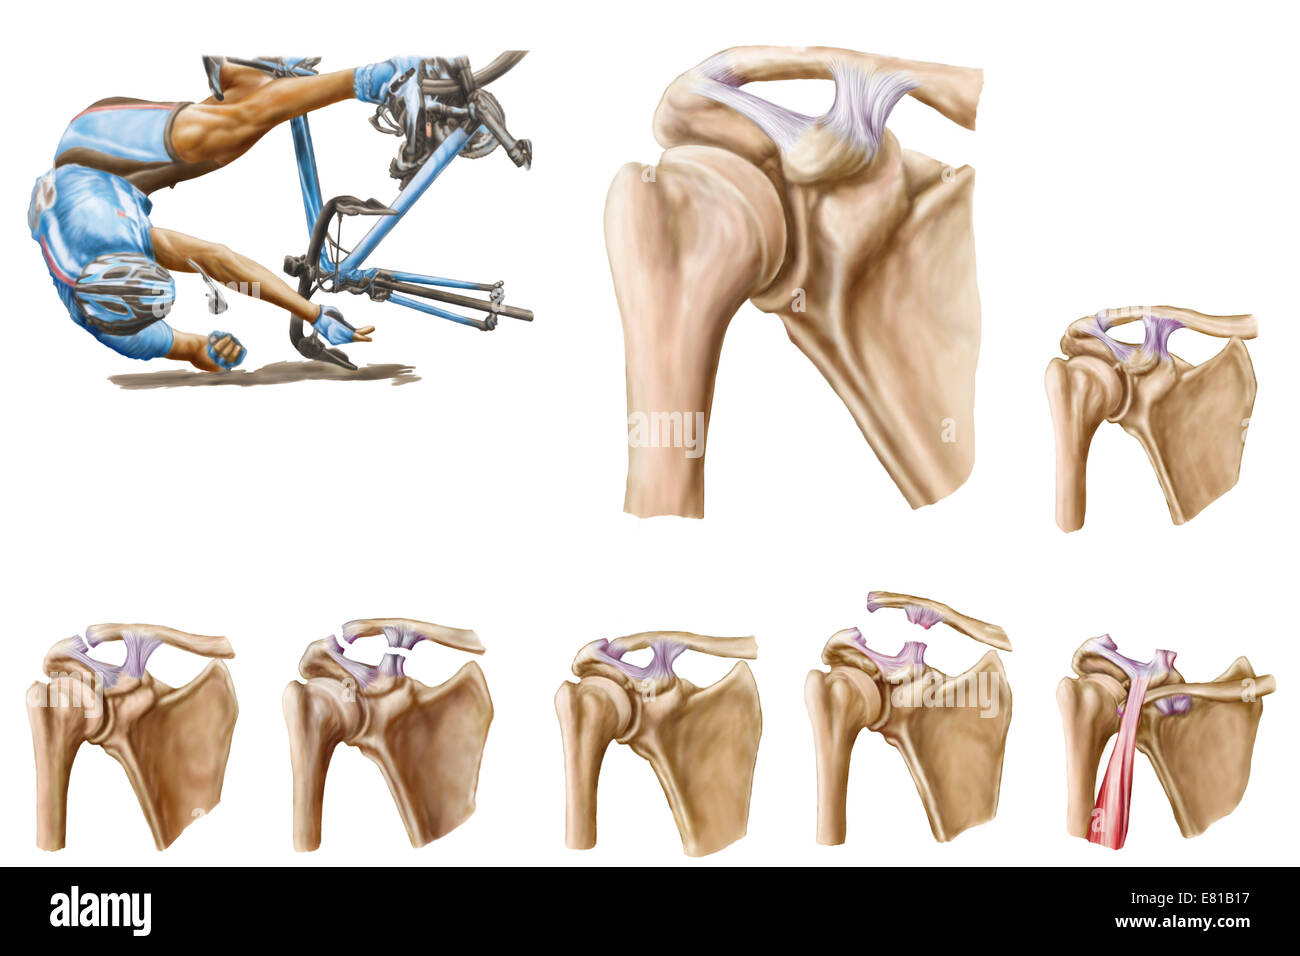 Anatomy of acromioclavicular joint rupture and displacement Stock ...